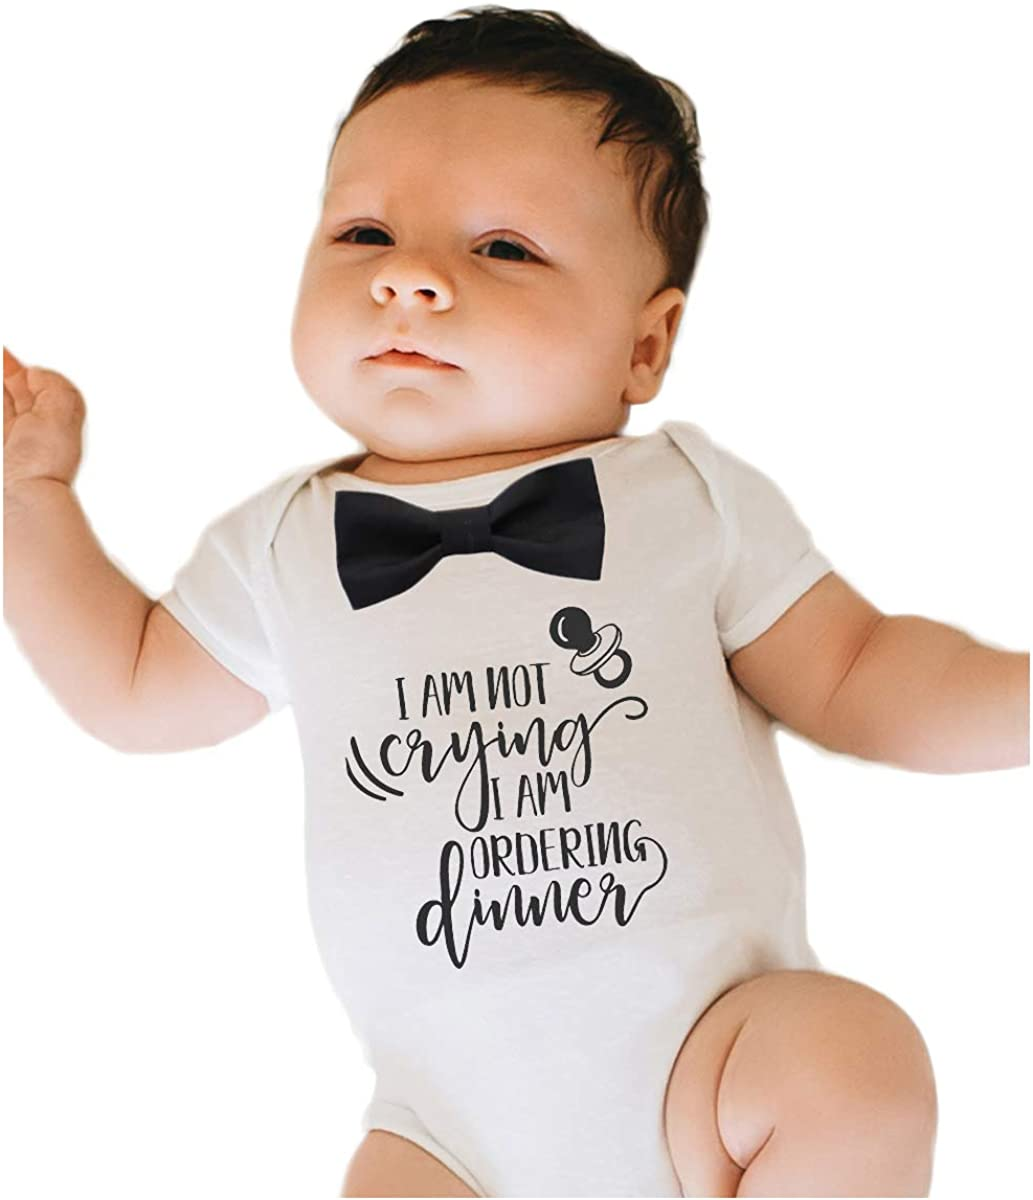 Design your own vest new baby gift cake smash outfit Personalised body suit baby shower gift Personalised vest baby photo shoot outfit